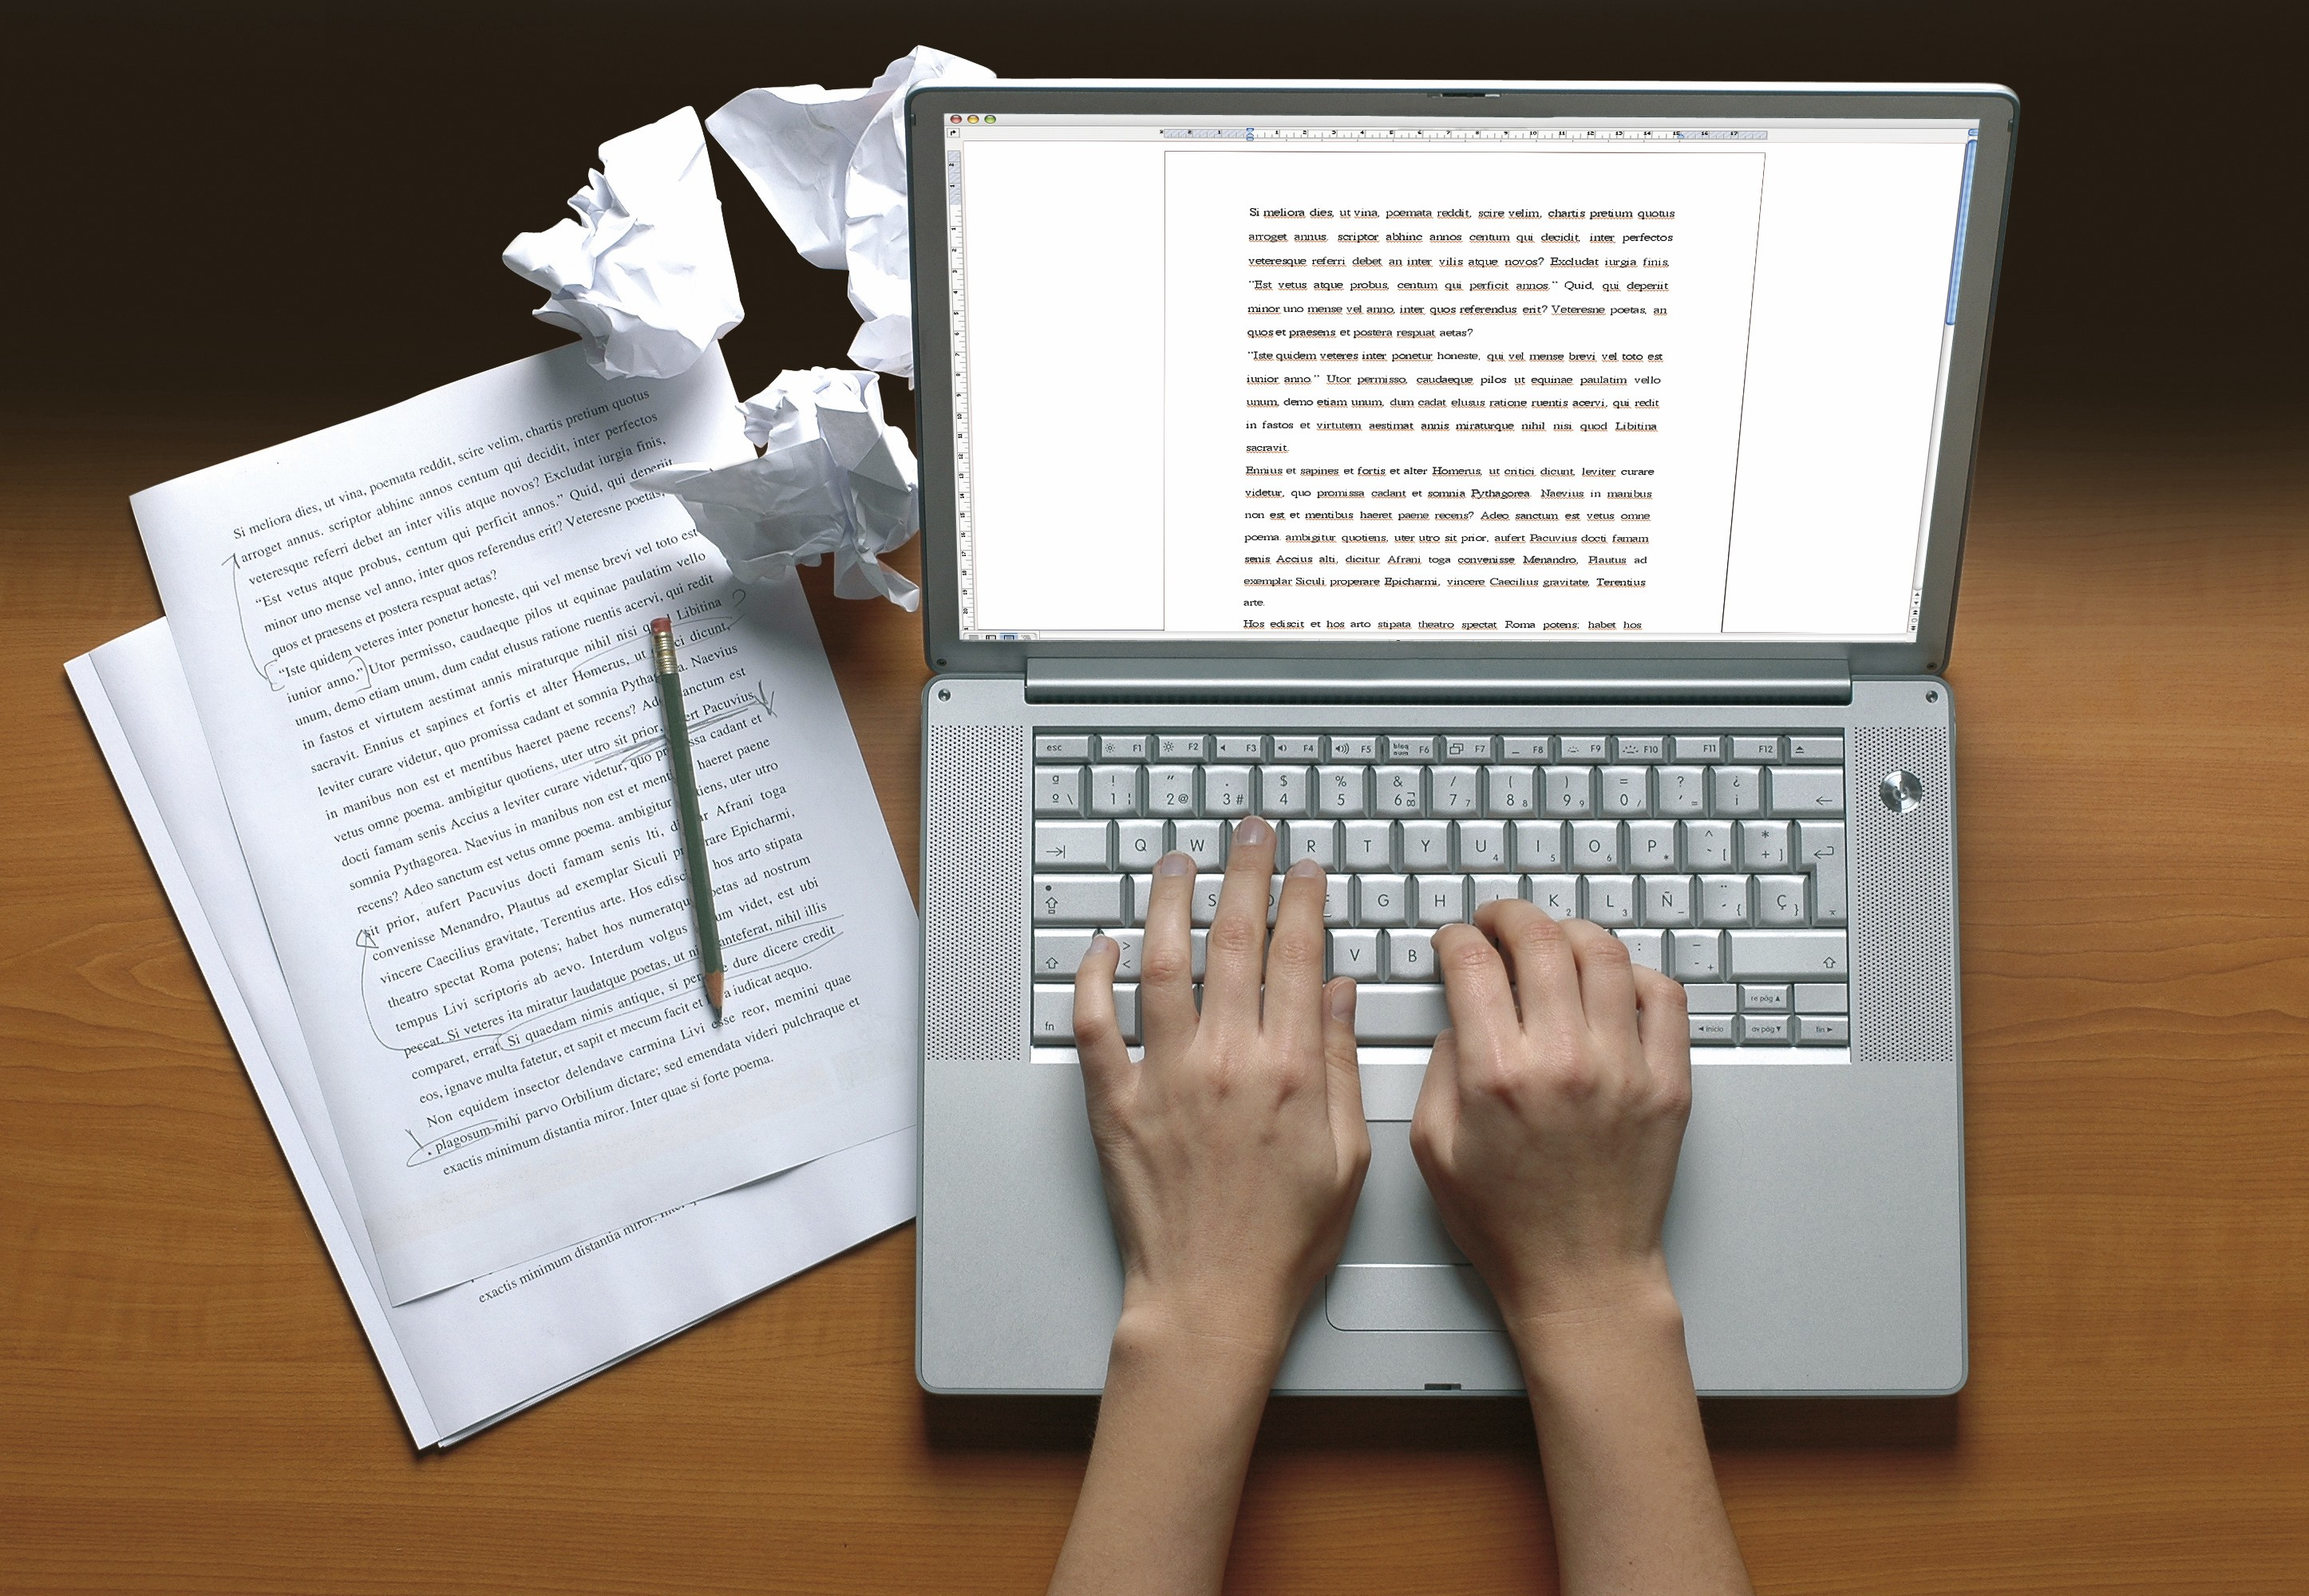 15 Easy Ways to Boost Your Writing Productivity